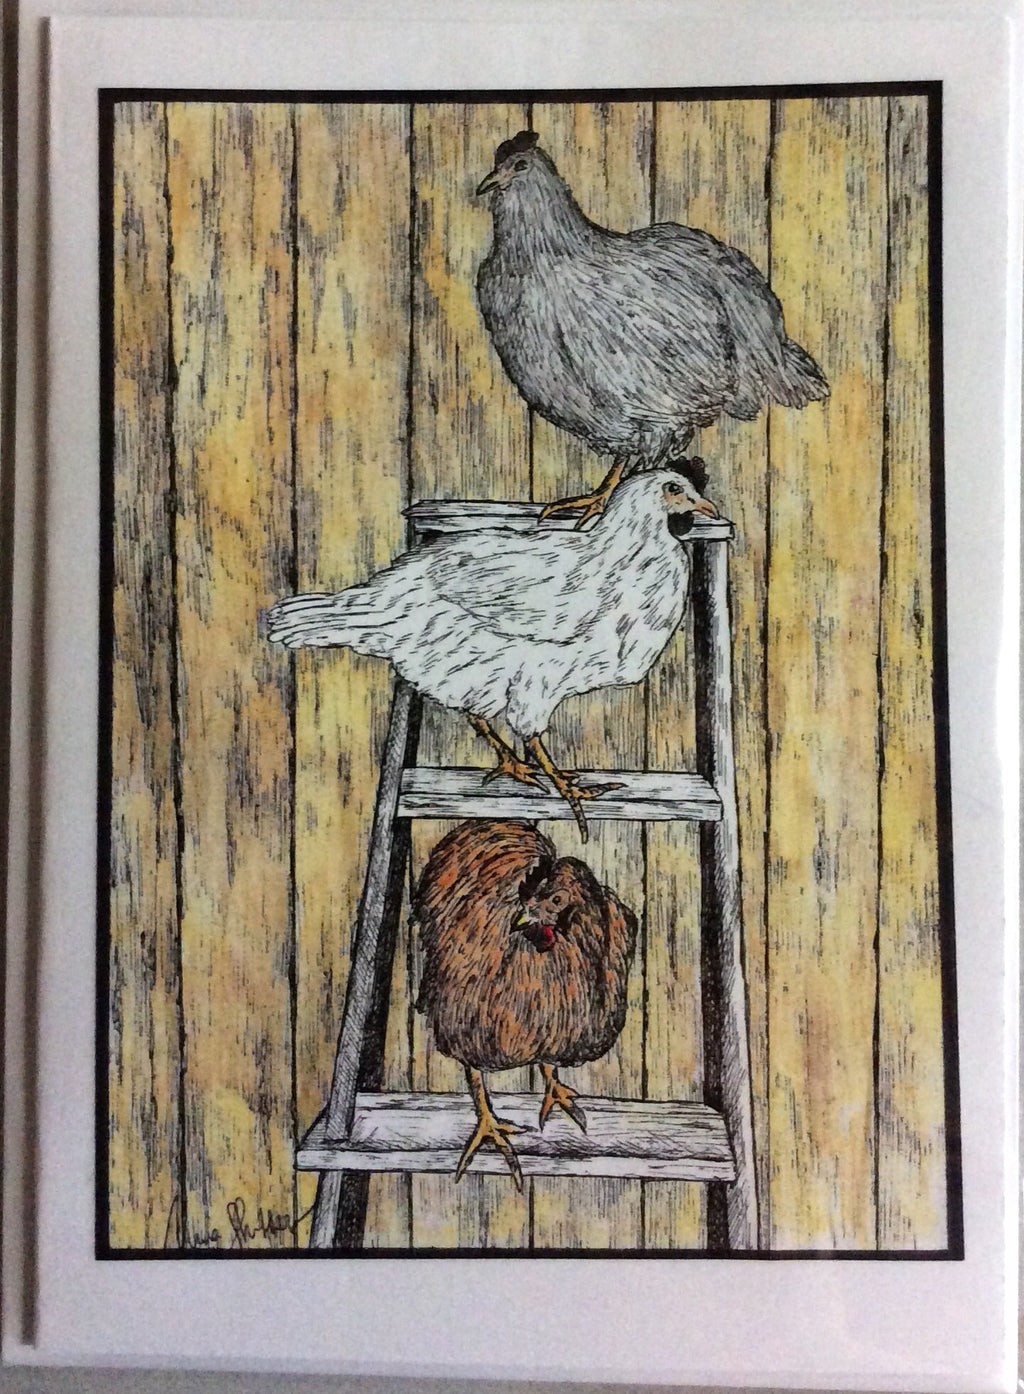 Bird Art - Ladder Roosters #317